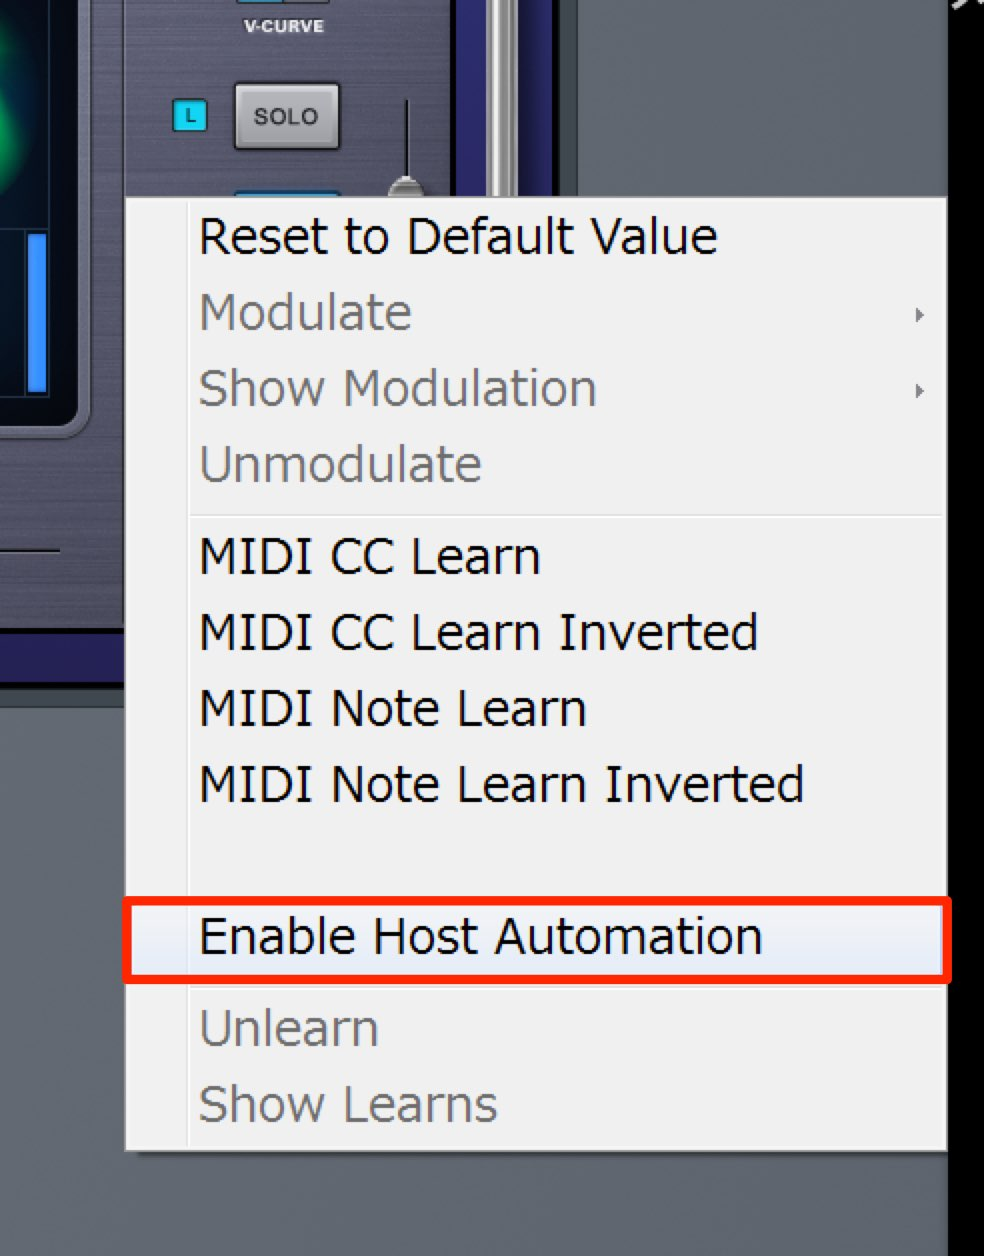 Enable Host Automation